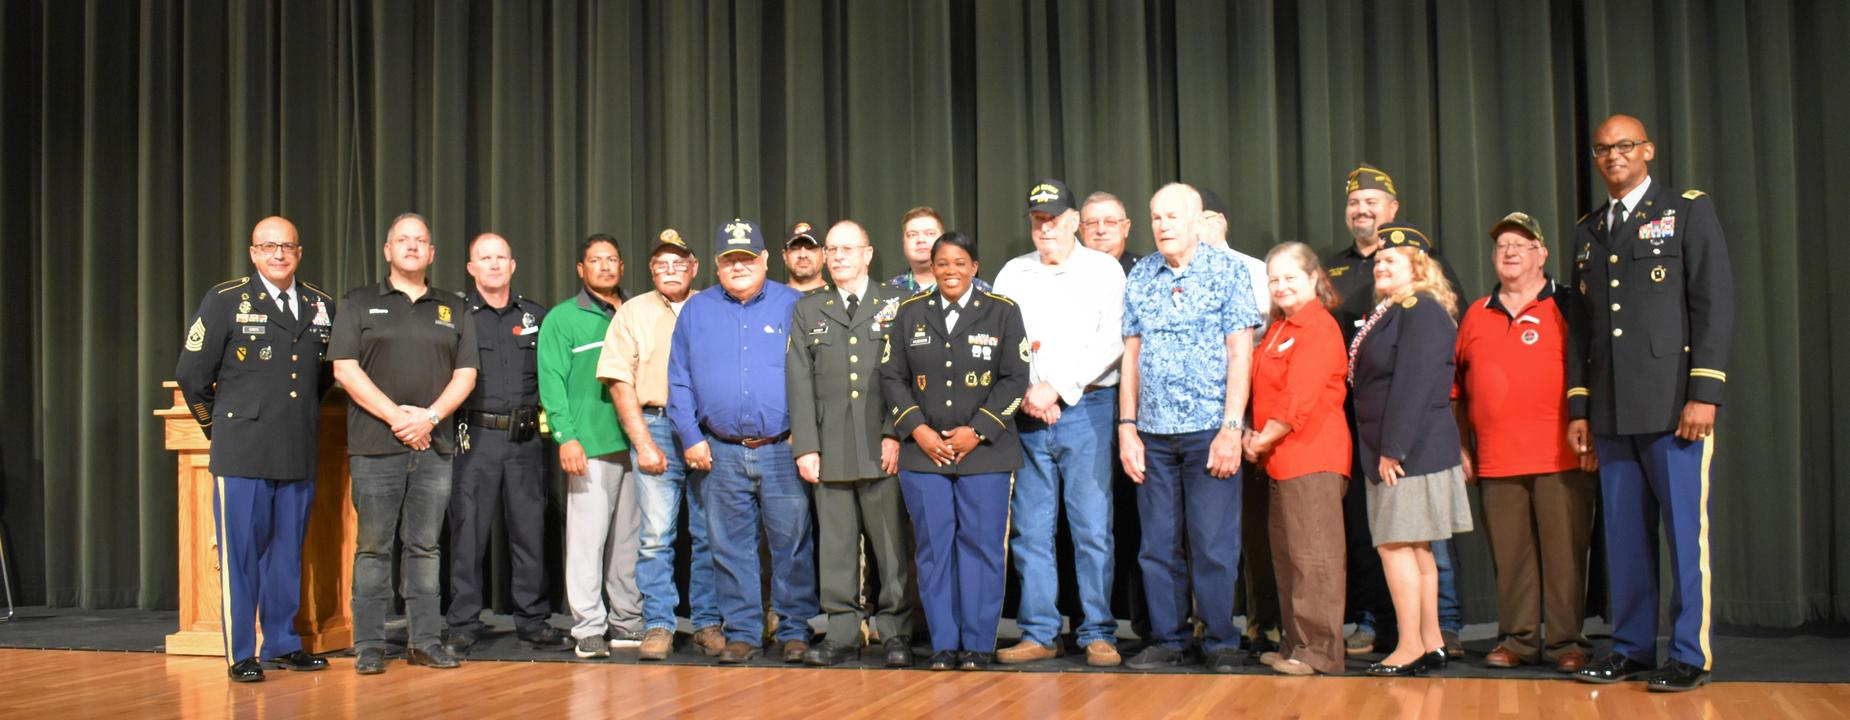 Veterans Day Ceremony at the PAC